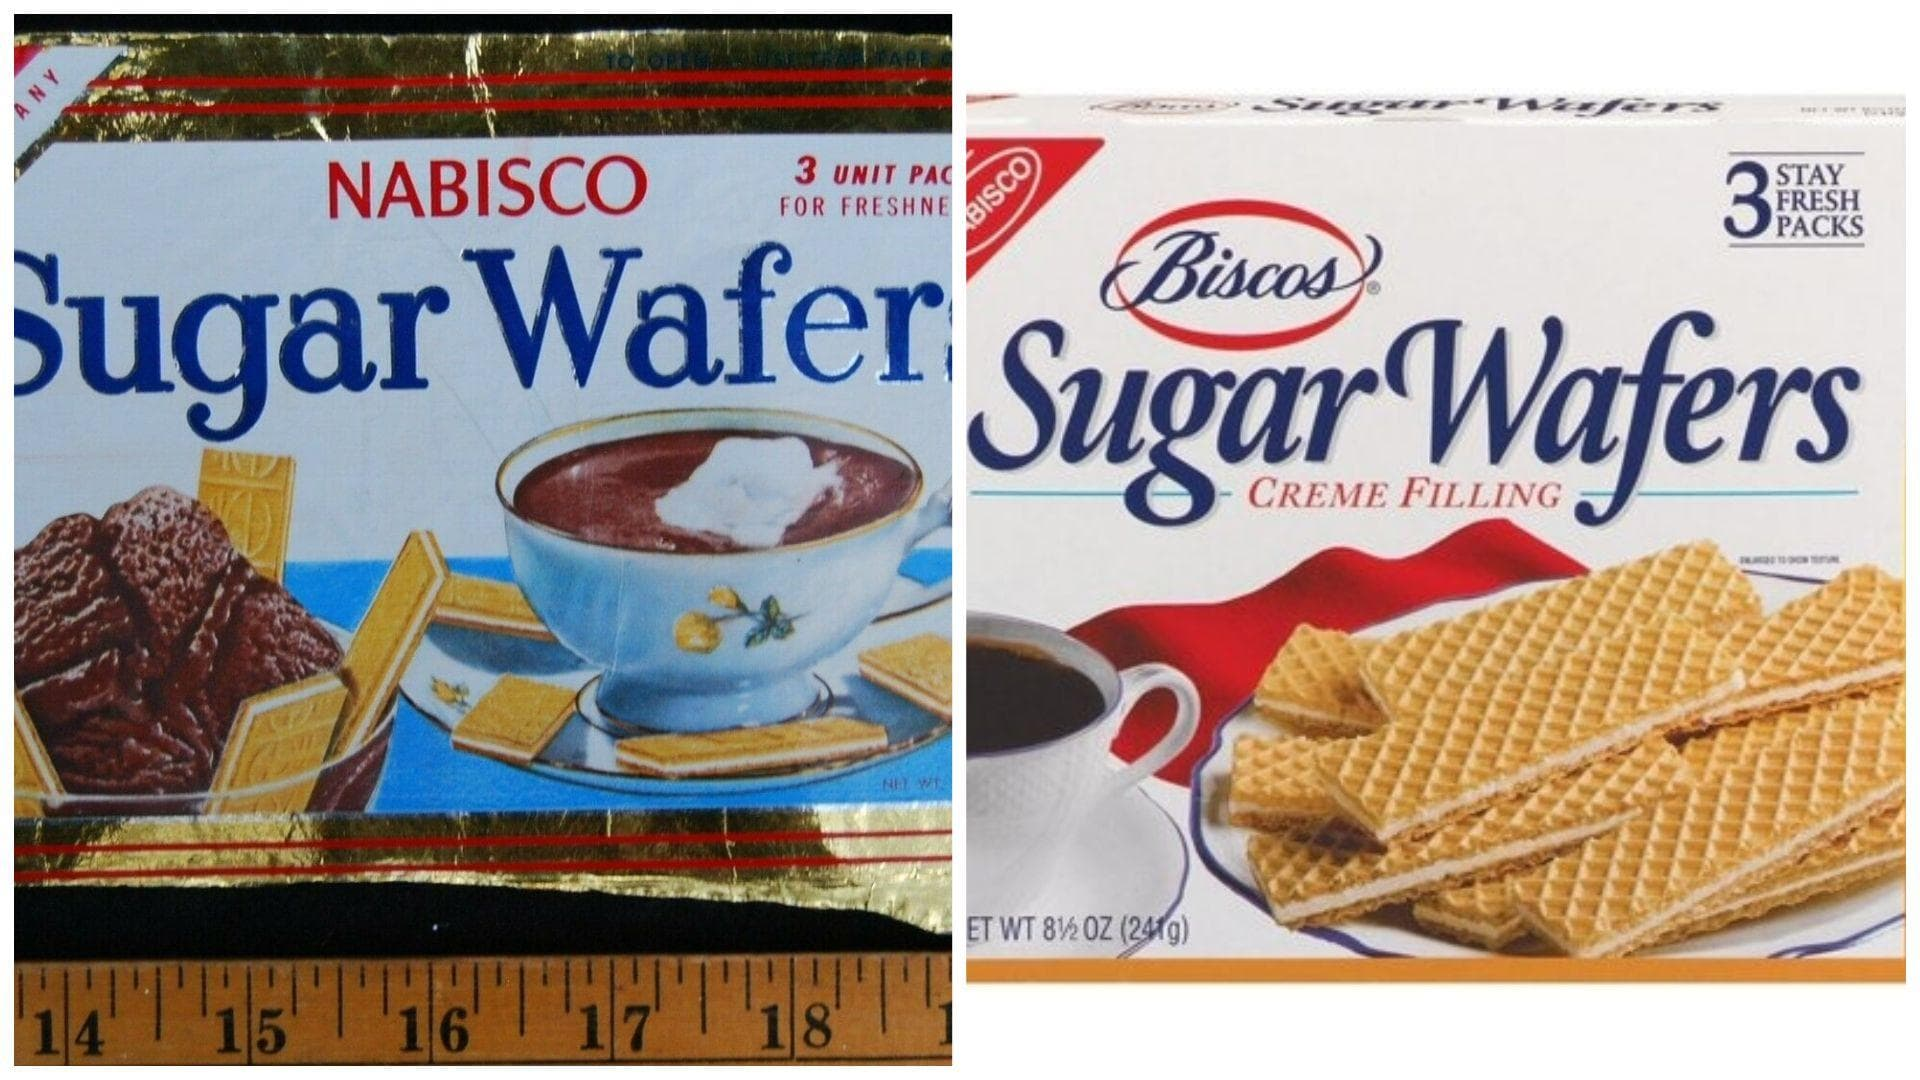 Biscos Sugar Wafers, C. 1960s Vs. 2019 on Random Changed Over Time of Cookie Boxes